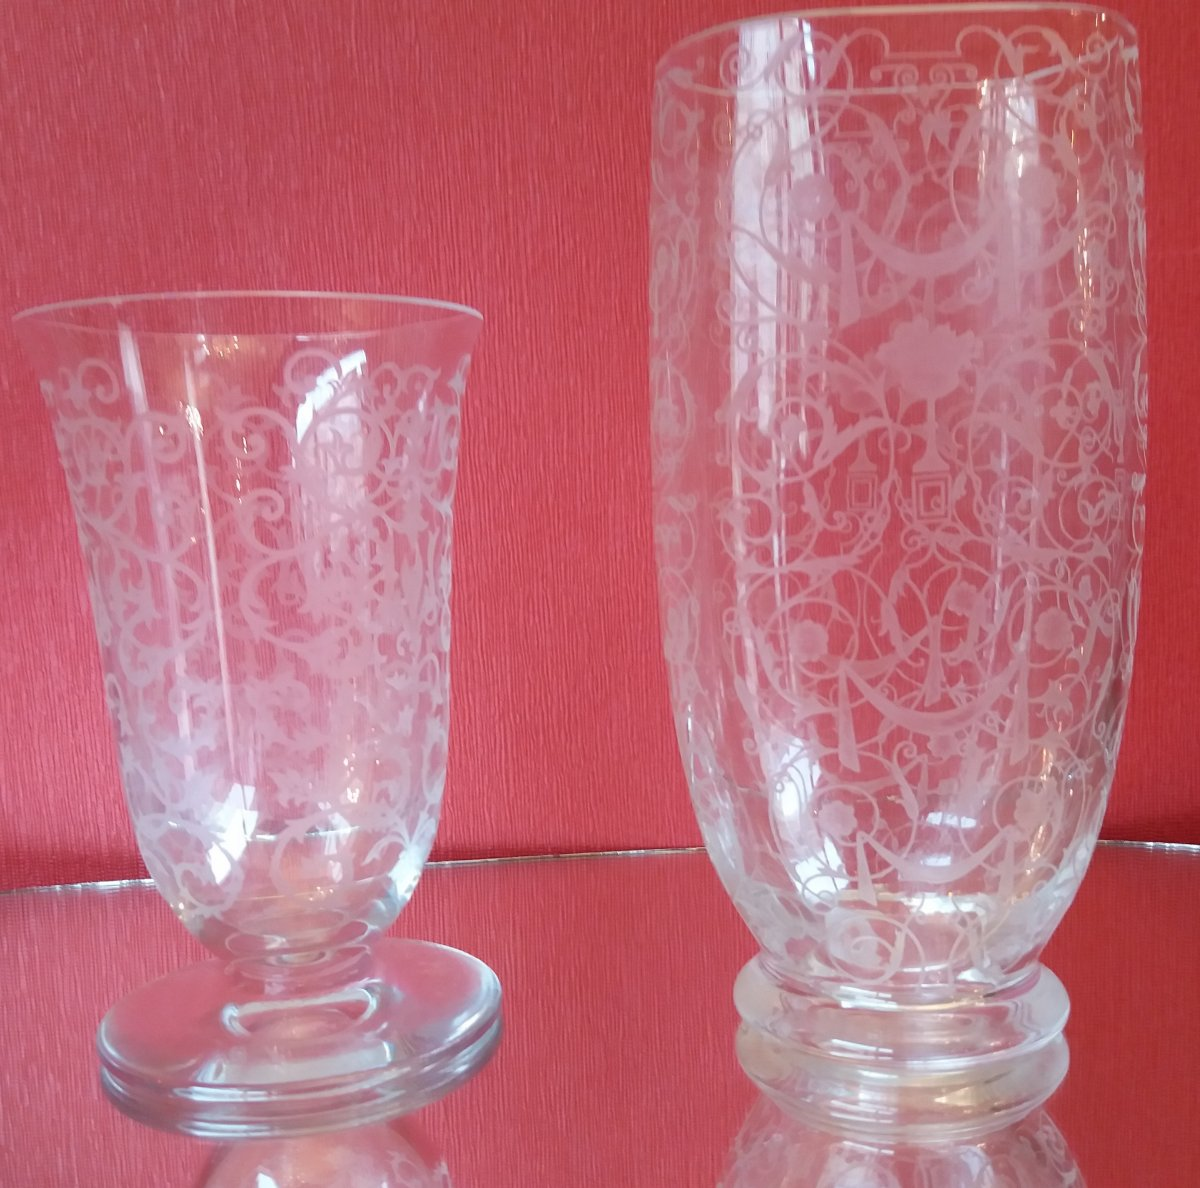 Pair Of Baccarat Crystal Vases: Michelangelo Model